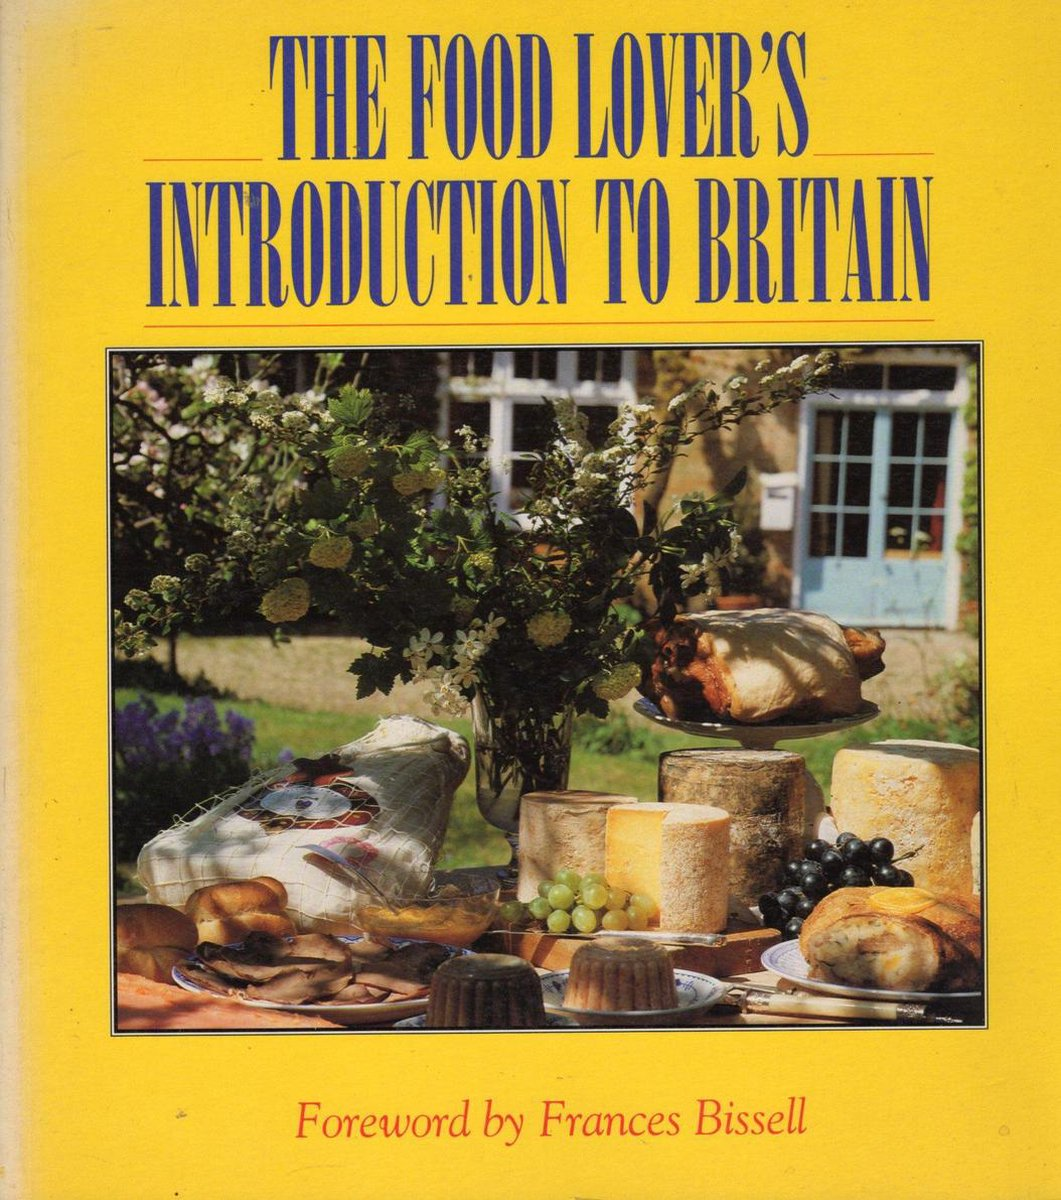 The Food Lover's Introduction To Britain